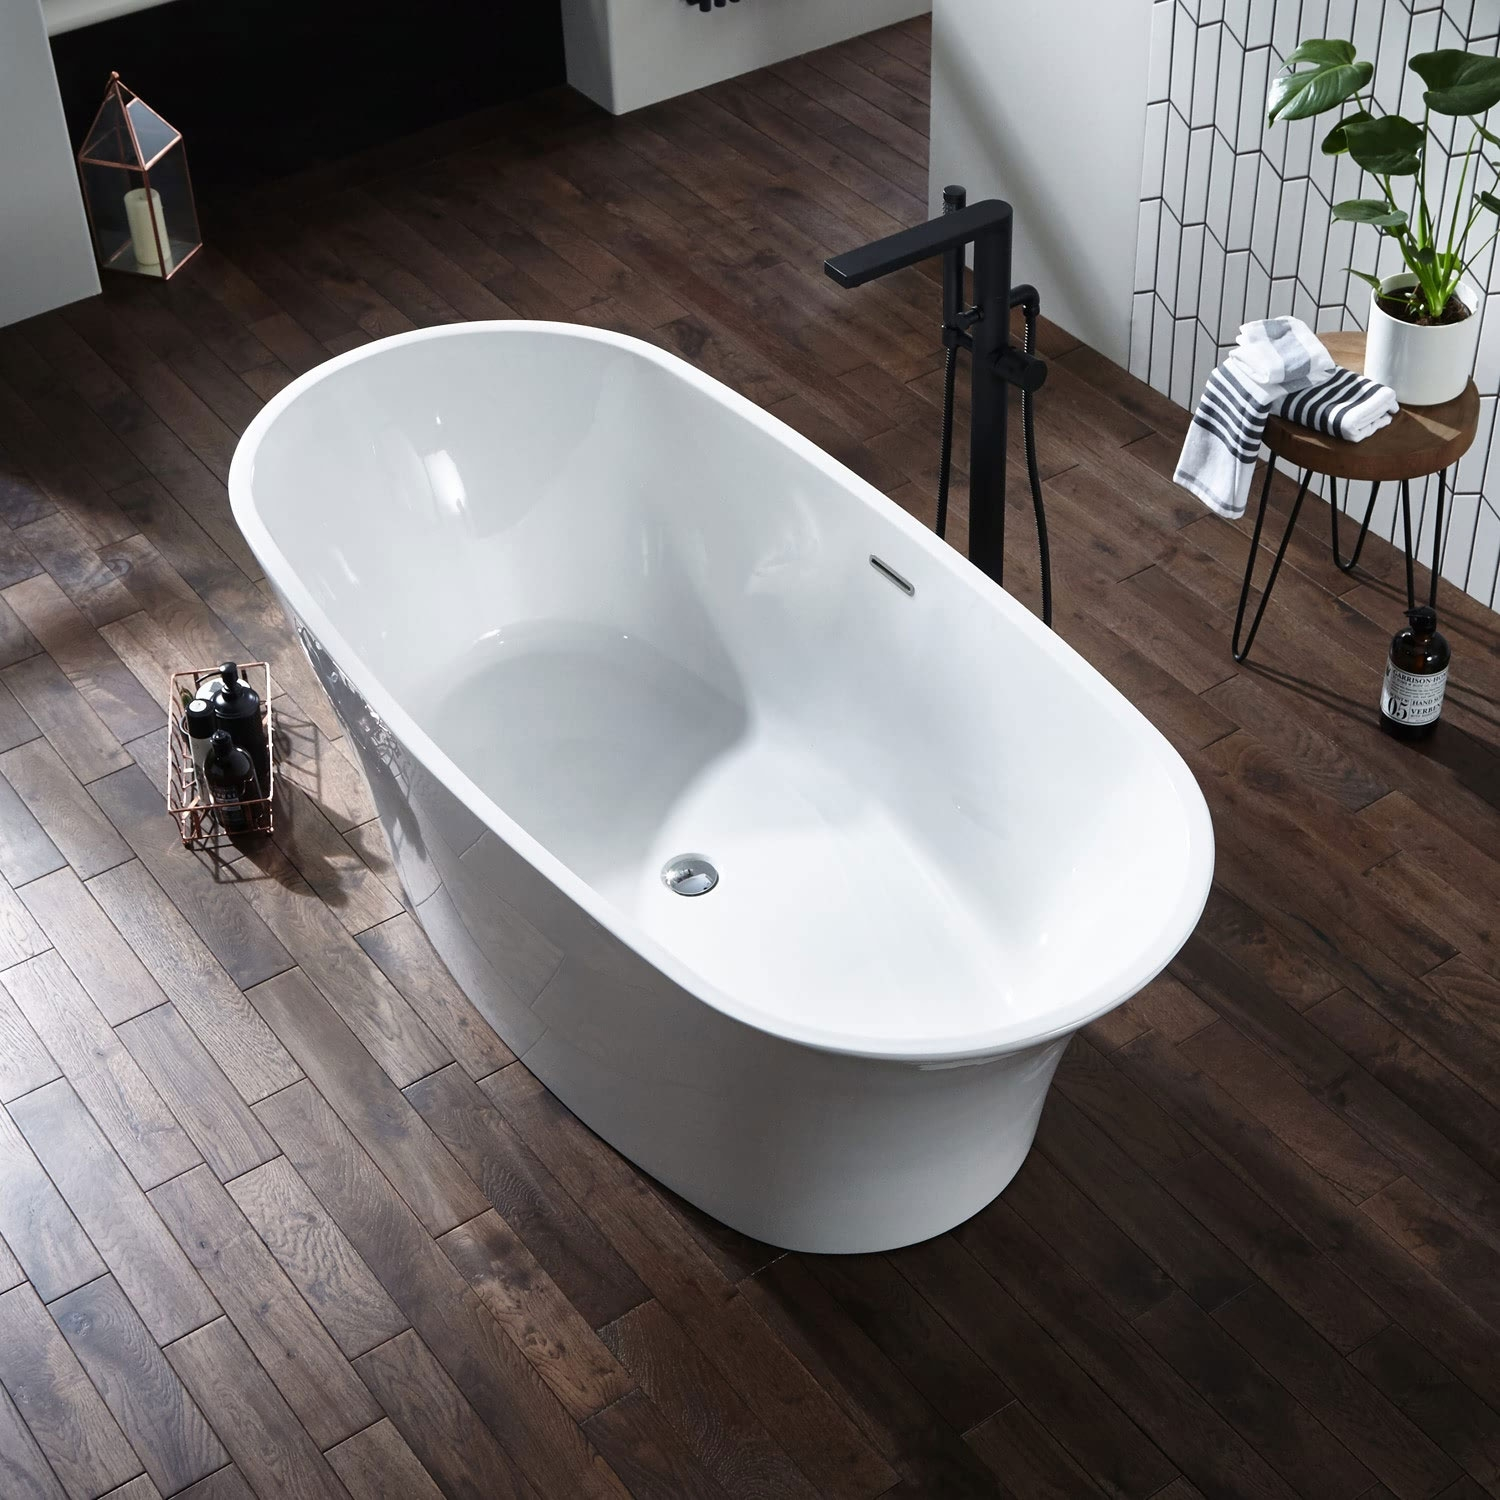 Verona Ion Luxury Freestanding Bath 1700mm x 800mm with Integrated Waste